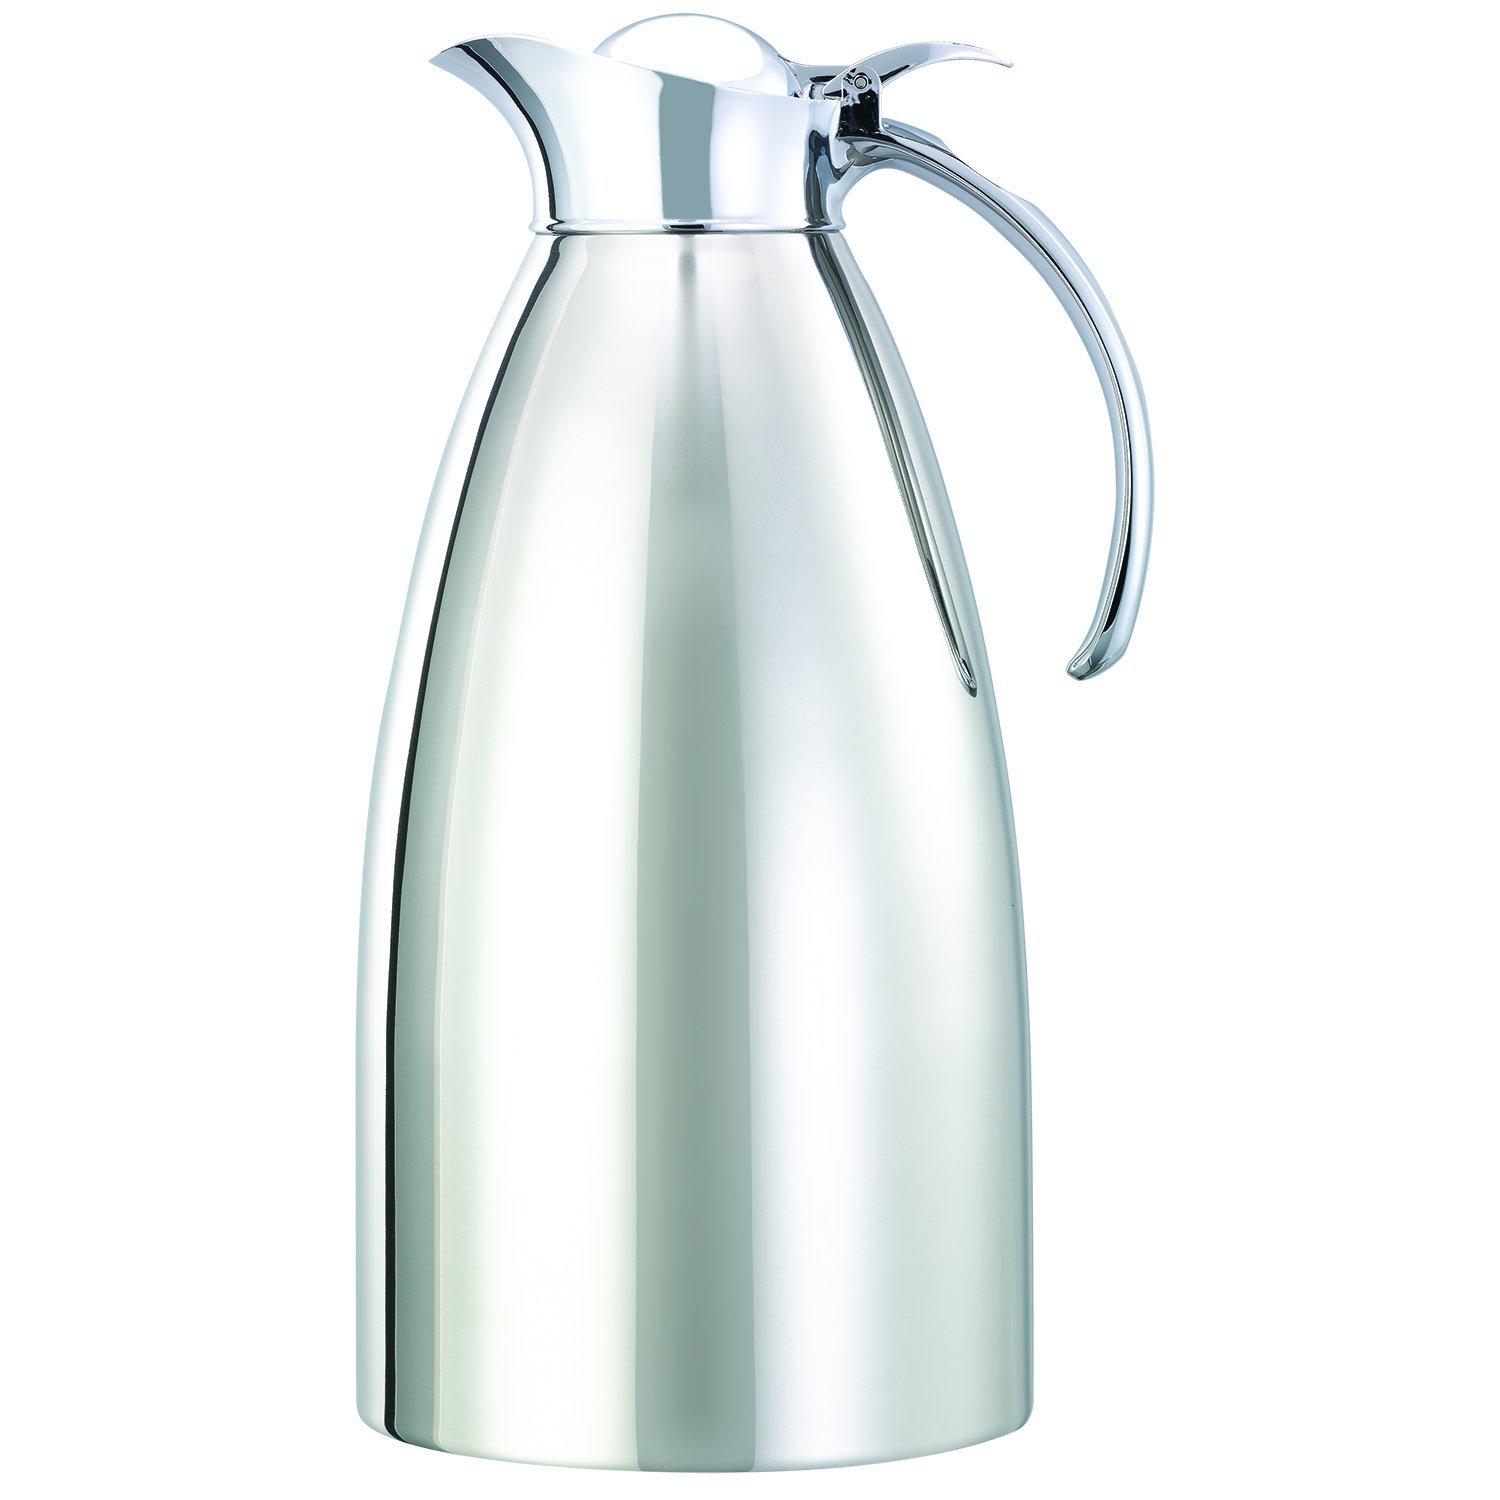 Service Ideas 982C10 Carafe, Stainless Steel Lined, Polished Exterior, 2 L